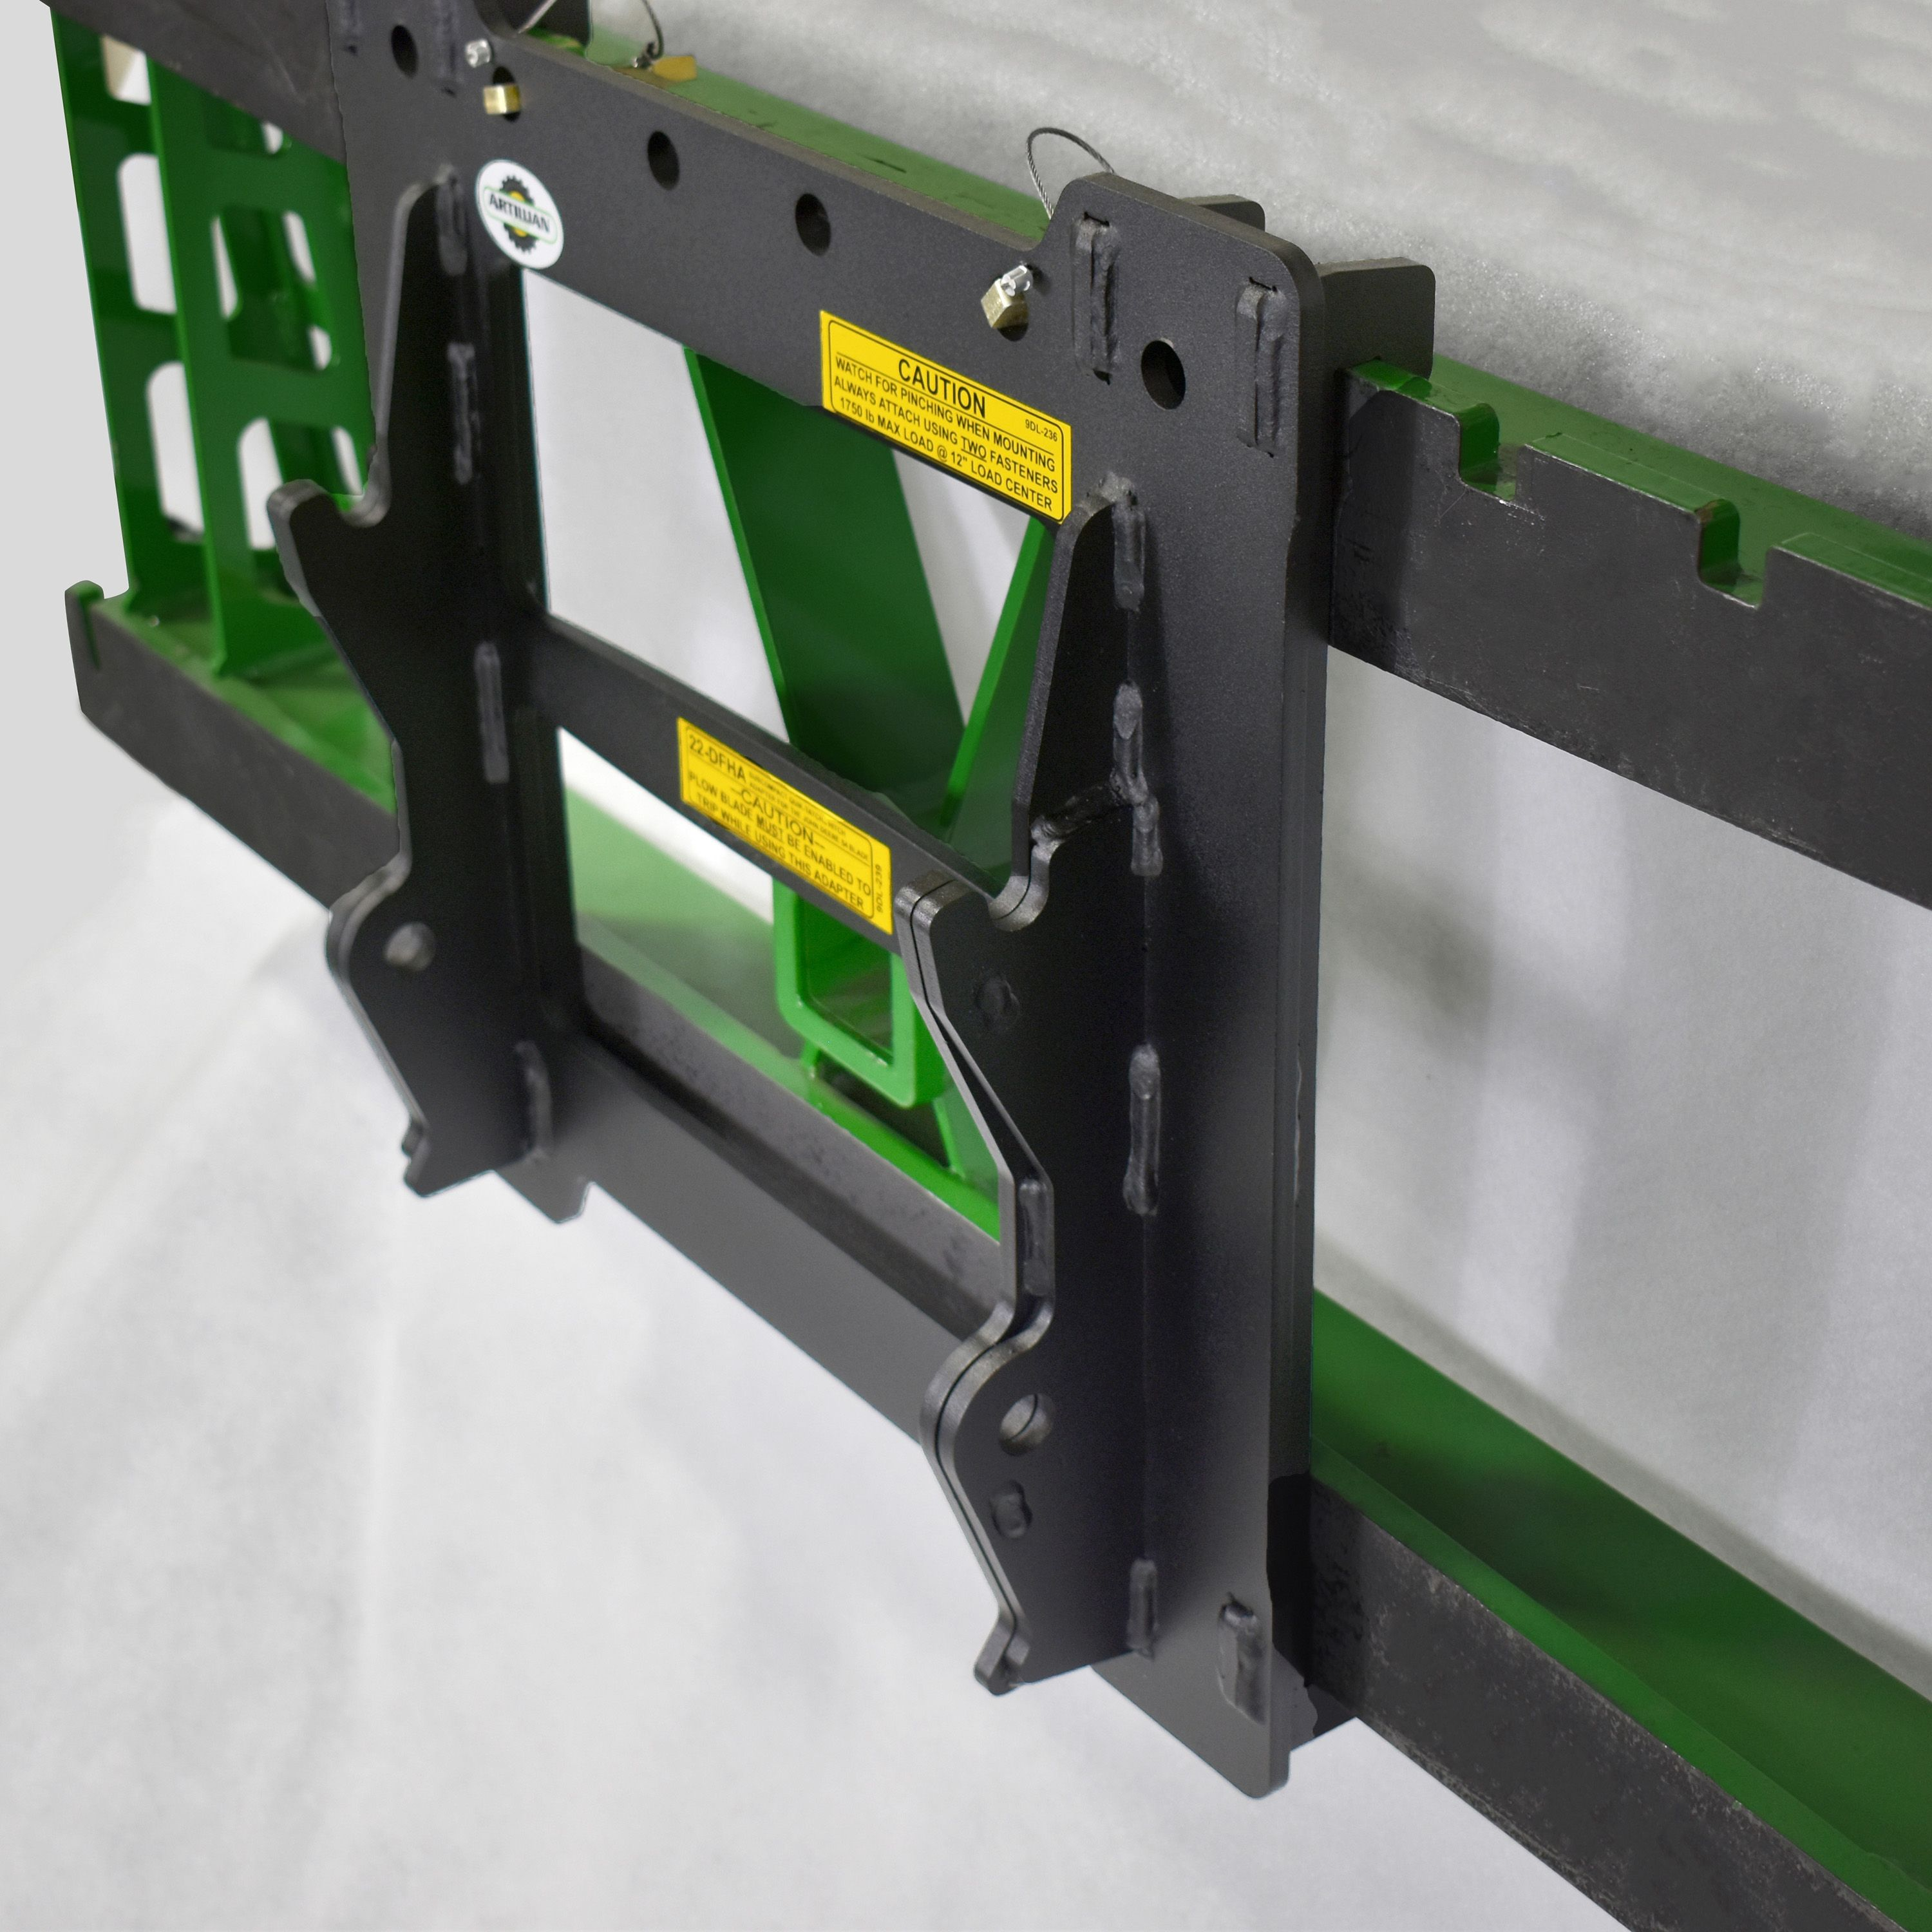 Subcompact Hitch Adapter For Jd Quik Tatch Hitch 54 Blade Sub